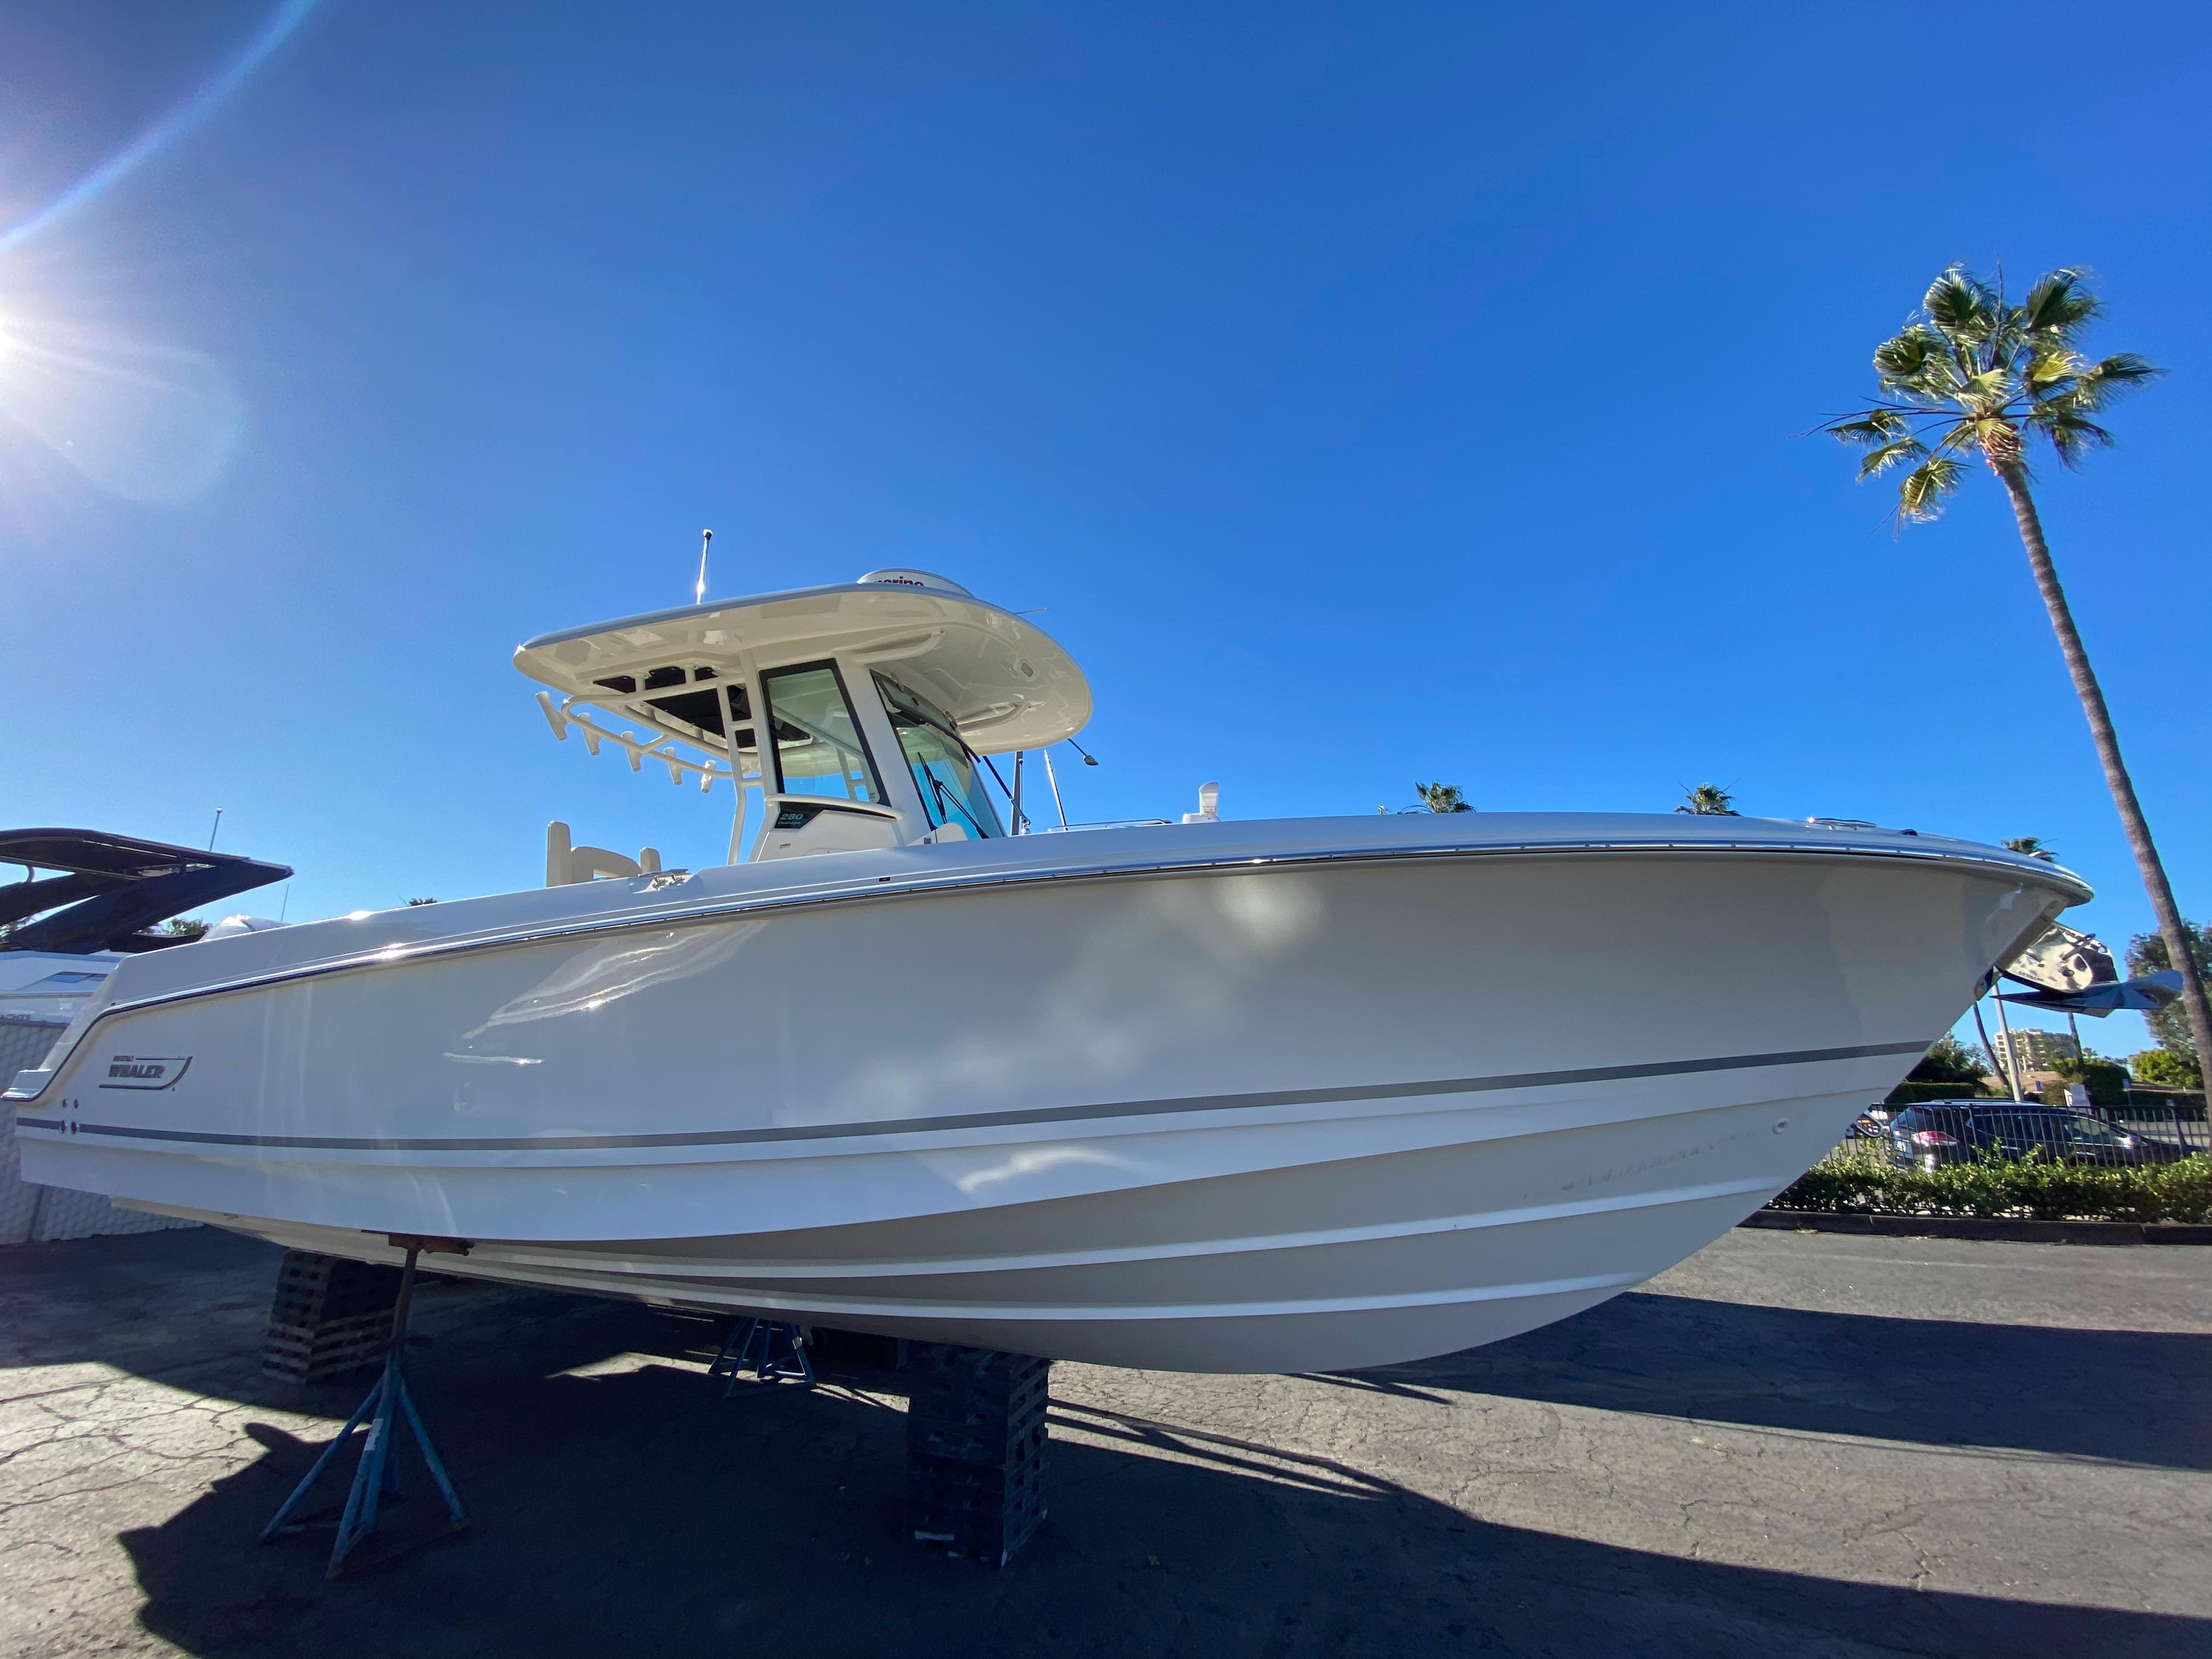 2021 Boston Whaler 280 Outrage #BW1196K inventory image at Sun Country Inland in Irvine